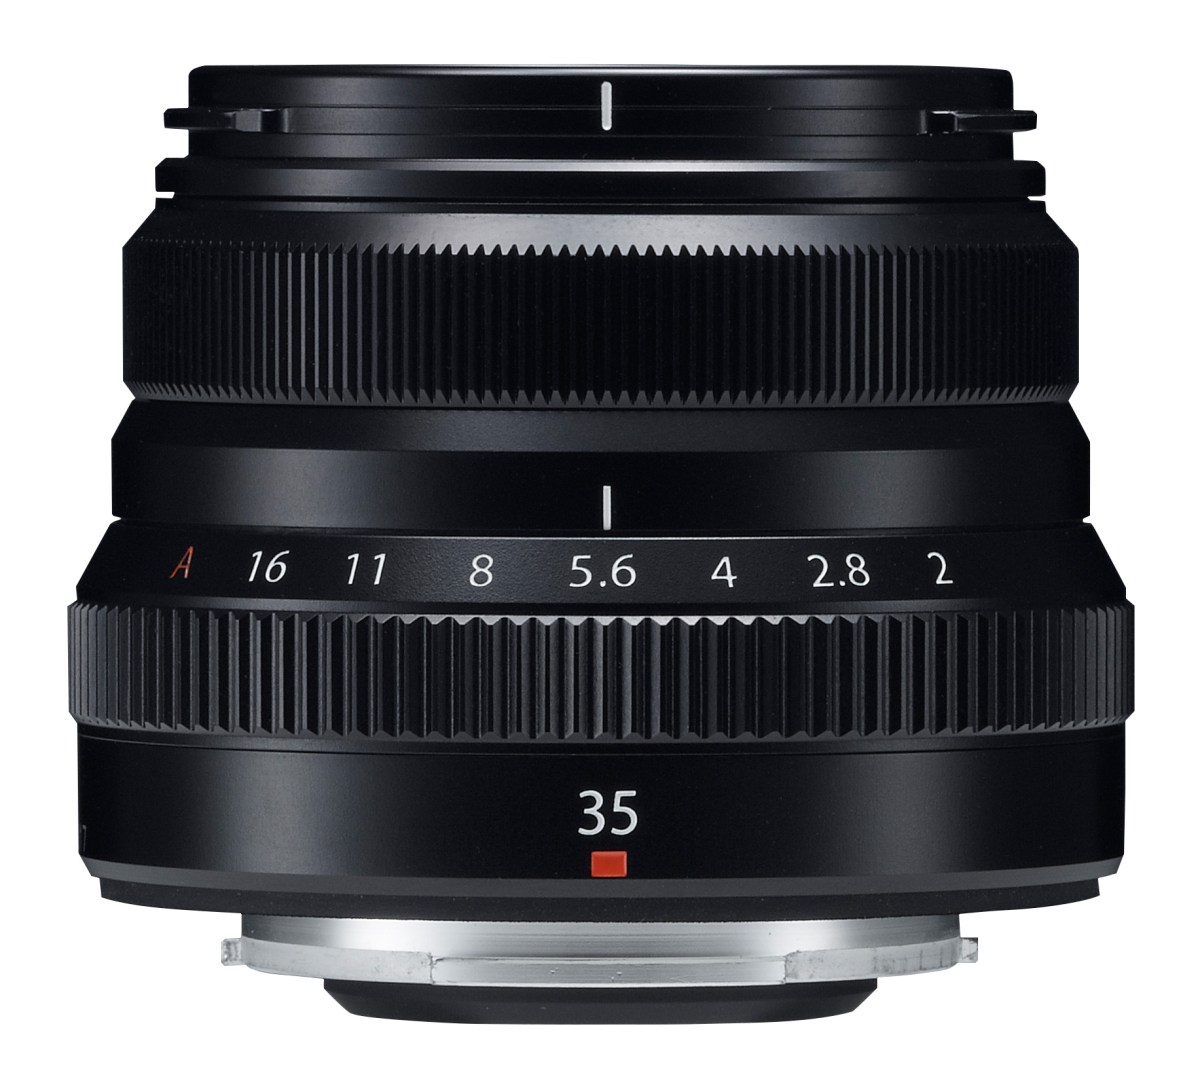 Fuji XF 35mm f2 Lens Is Quick On The Street